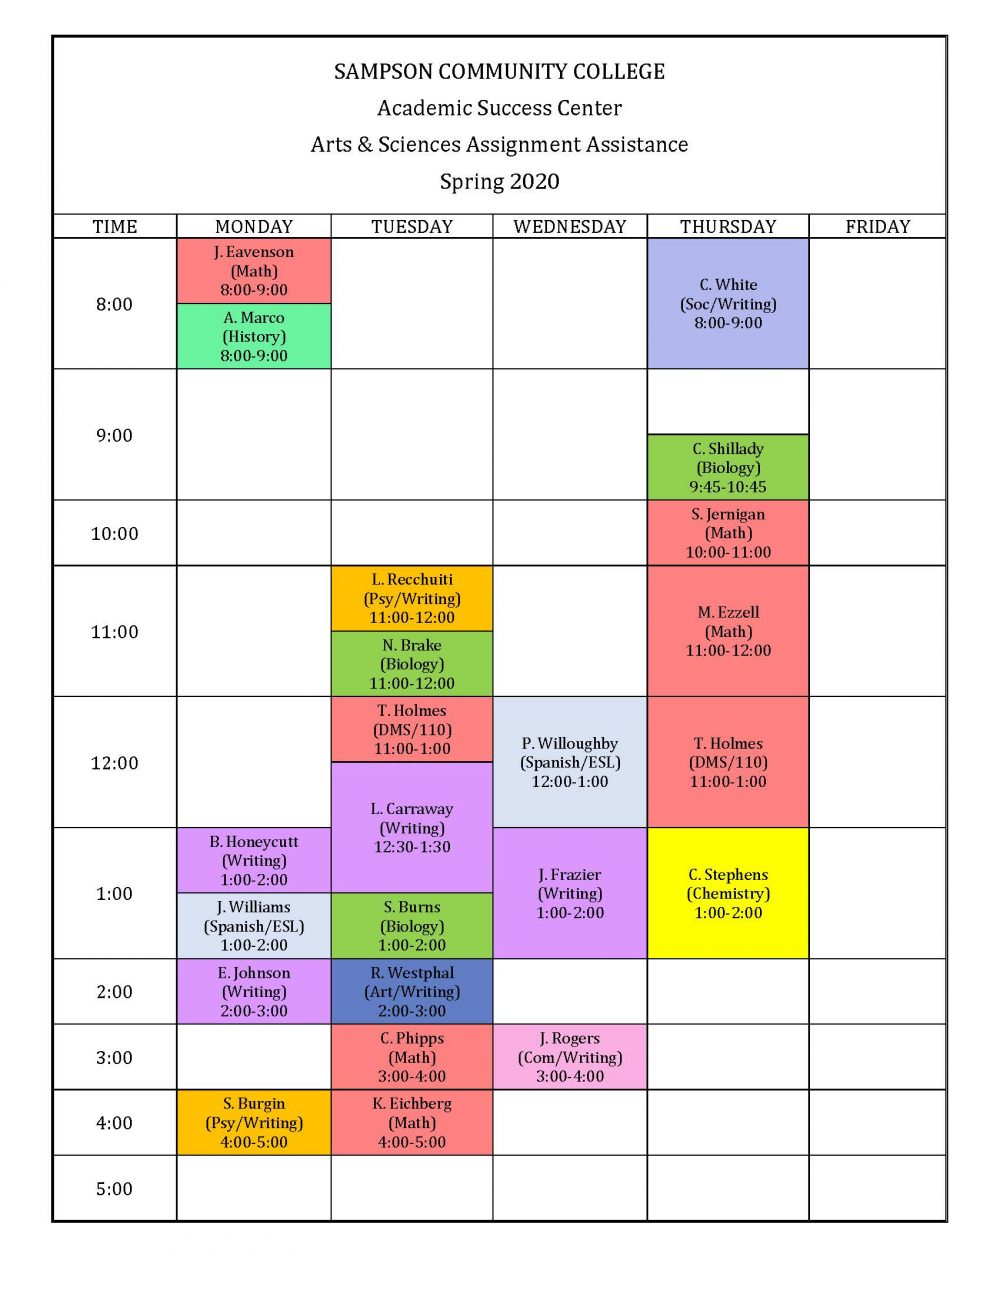 Academic Success Center Professional Tutoring Schedule for Spring 2020